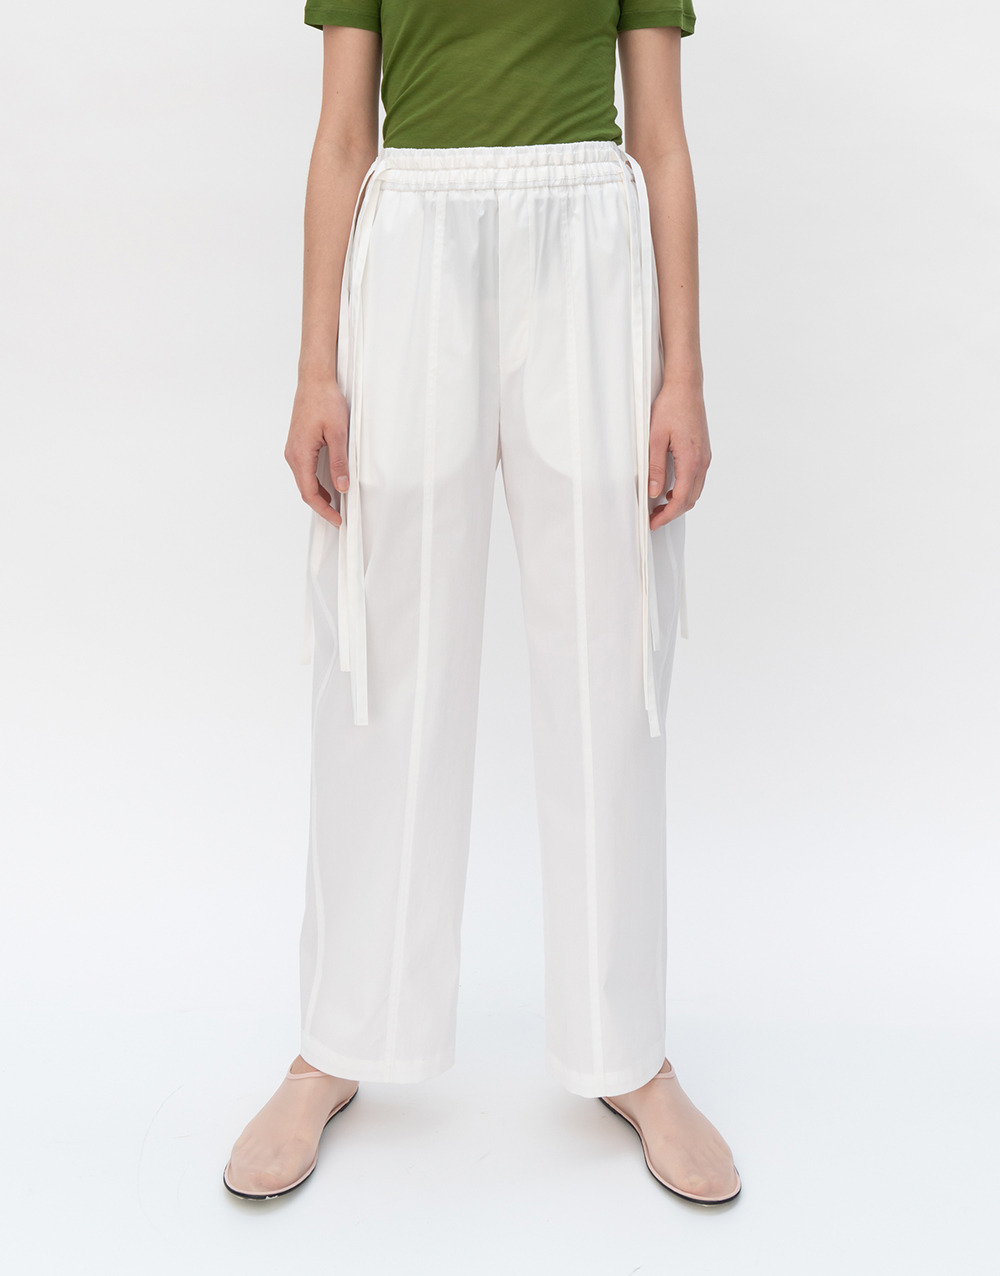 GBH APPAREL ADULT  String Banding Pants WHITE